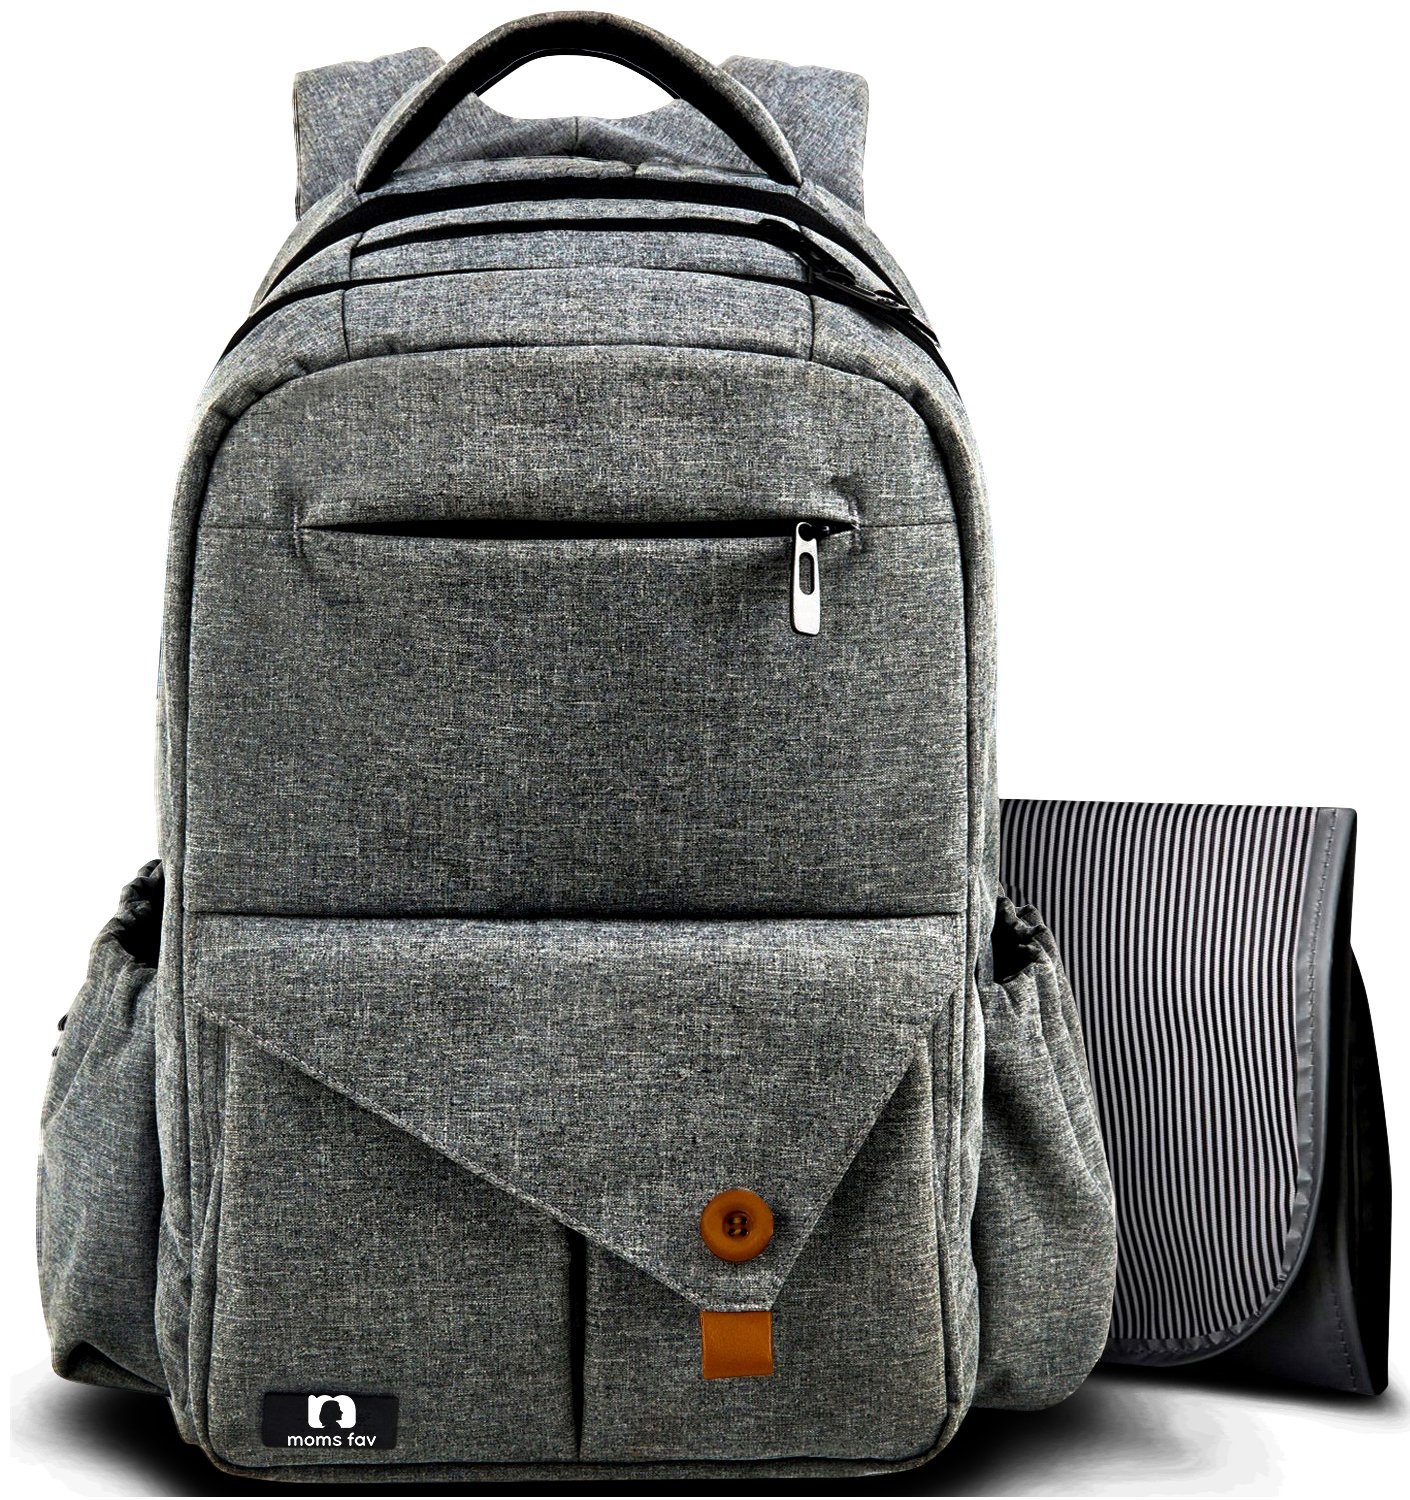 MOMS FAV Multi-function L-Grey Large Baby Diaper Bag Backpack W/Stroller Straps-Insulated Bottle Pockets-Changing Pad, High Quality Nylon Fabric Waterproof for Moms & Dads